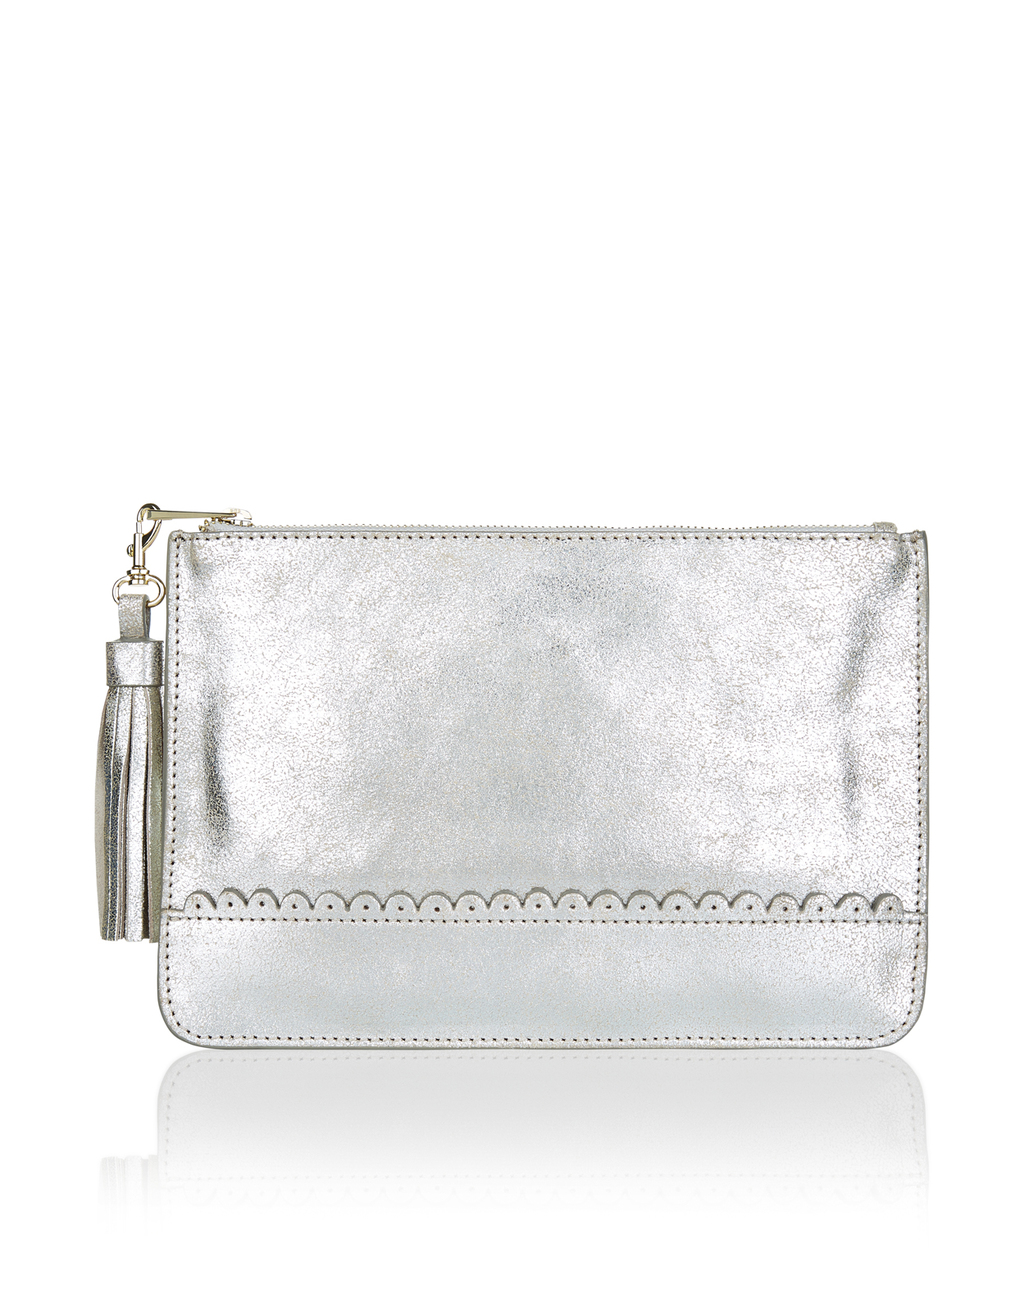 Metallic Pouch - predominant colour: silver; occasions: evening, occasion; type of pattern: standard; style: clutch; length: hand carry; size: small; material: faux leather; pattern: plain; finish: metallic; season: a/w 2016; wardrobe: event; trends: metallics